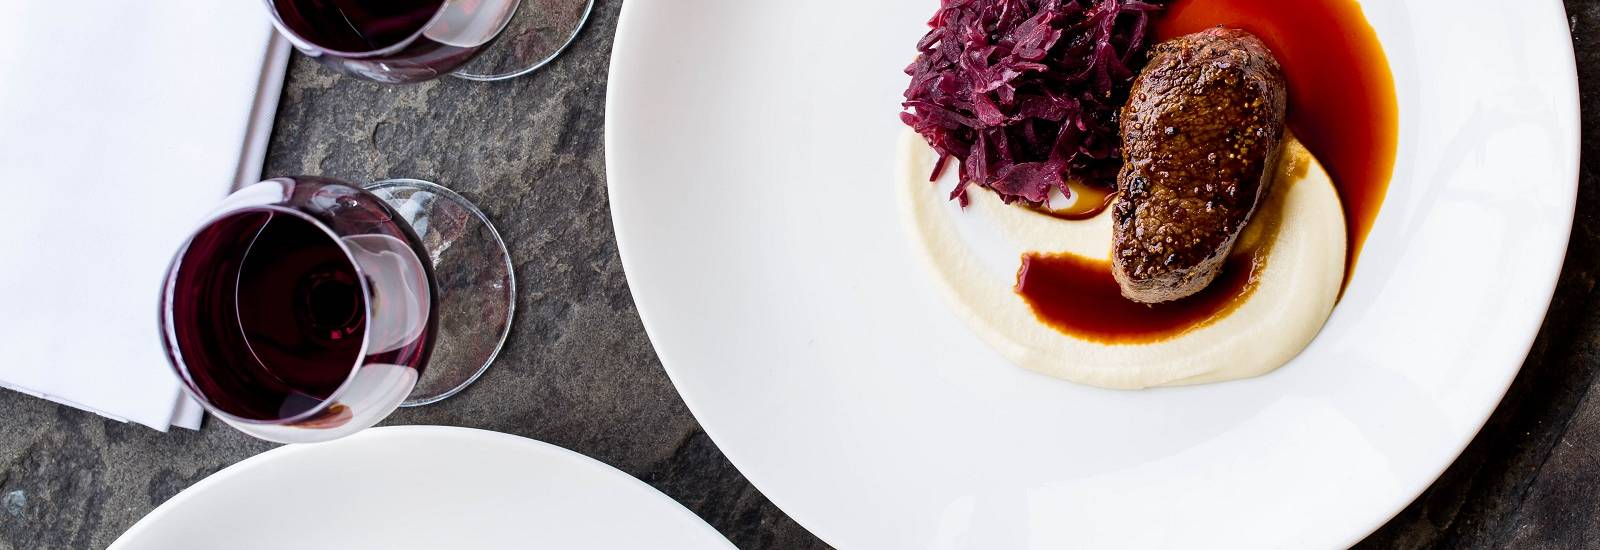 Roast saddle of venison with braised red cabbage and parsnip puree 19